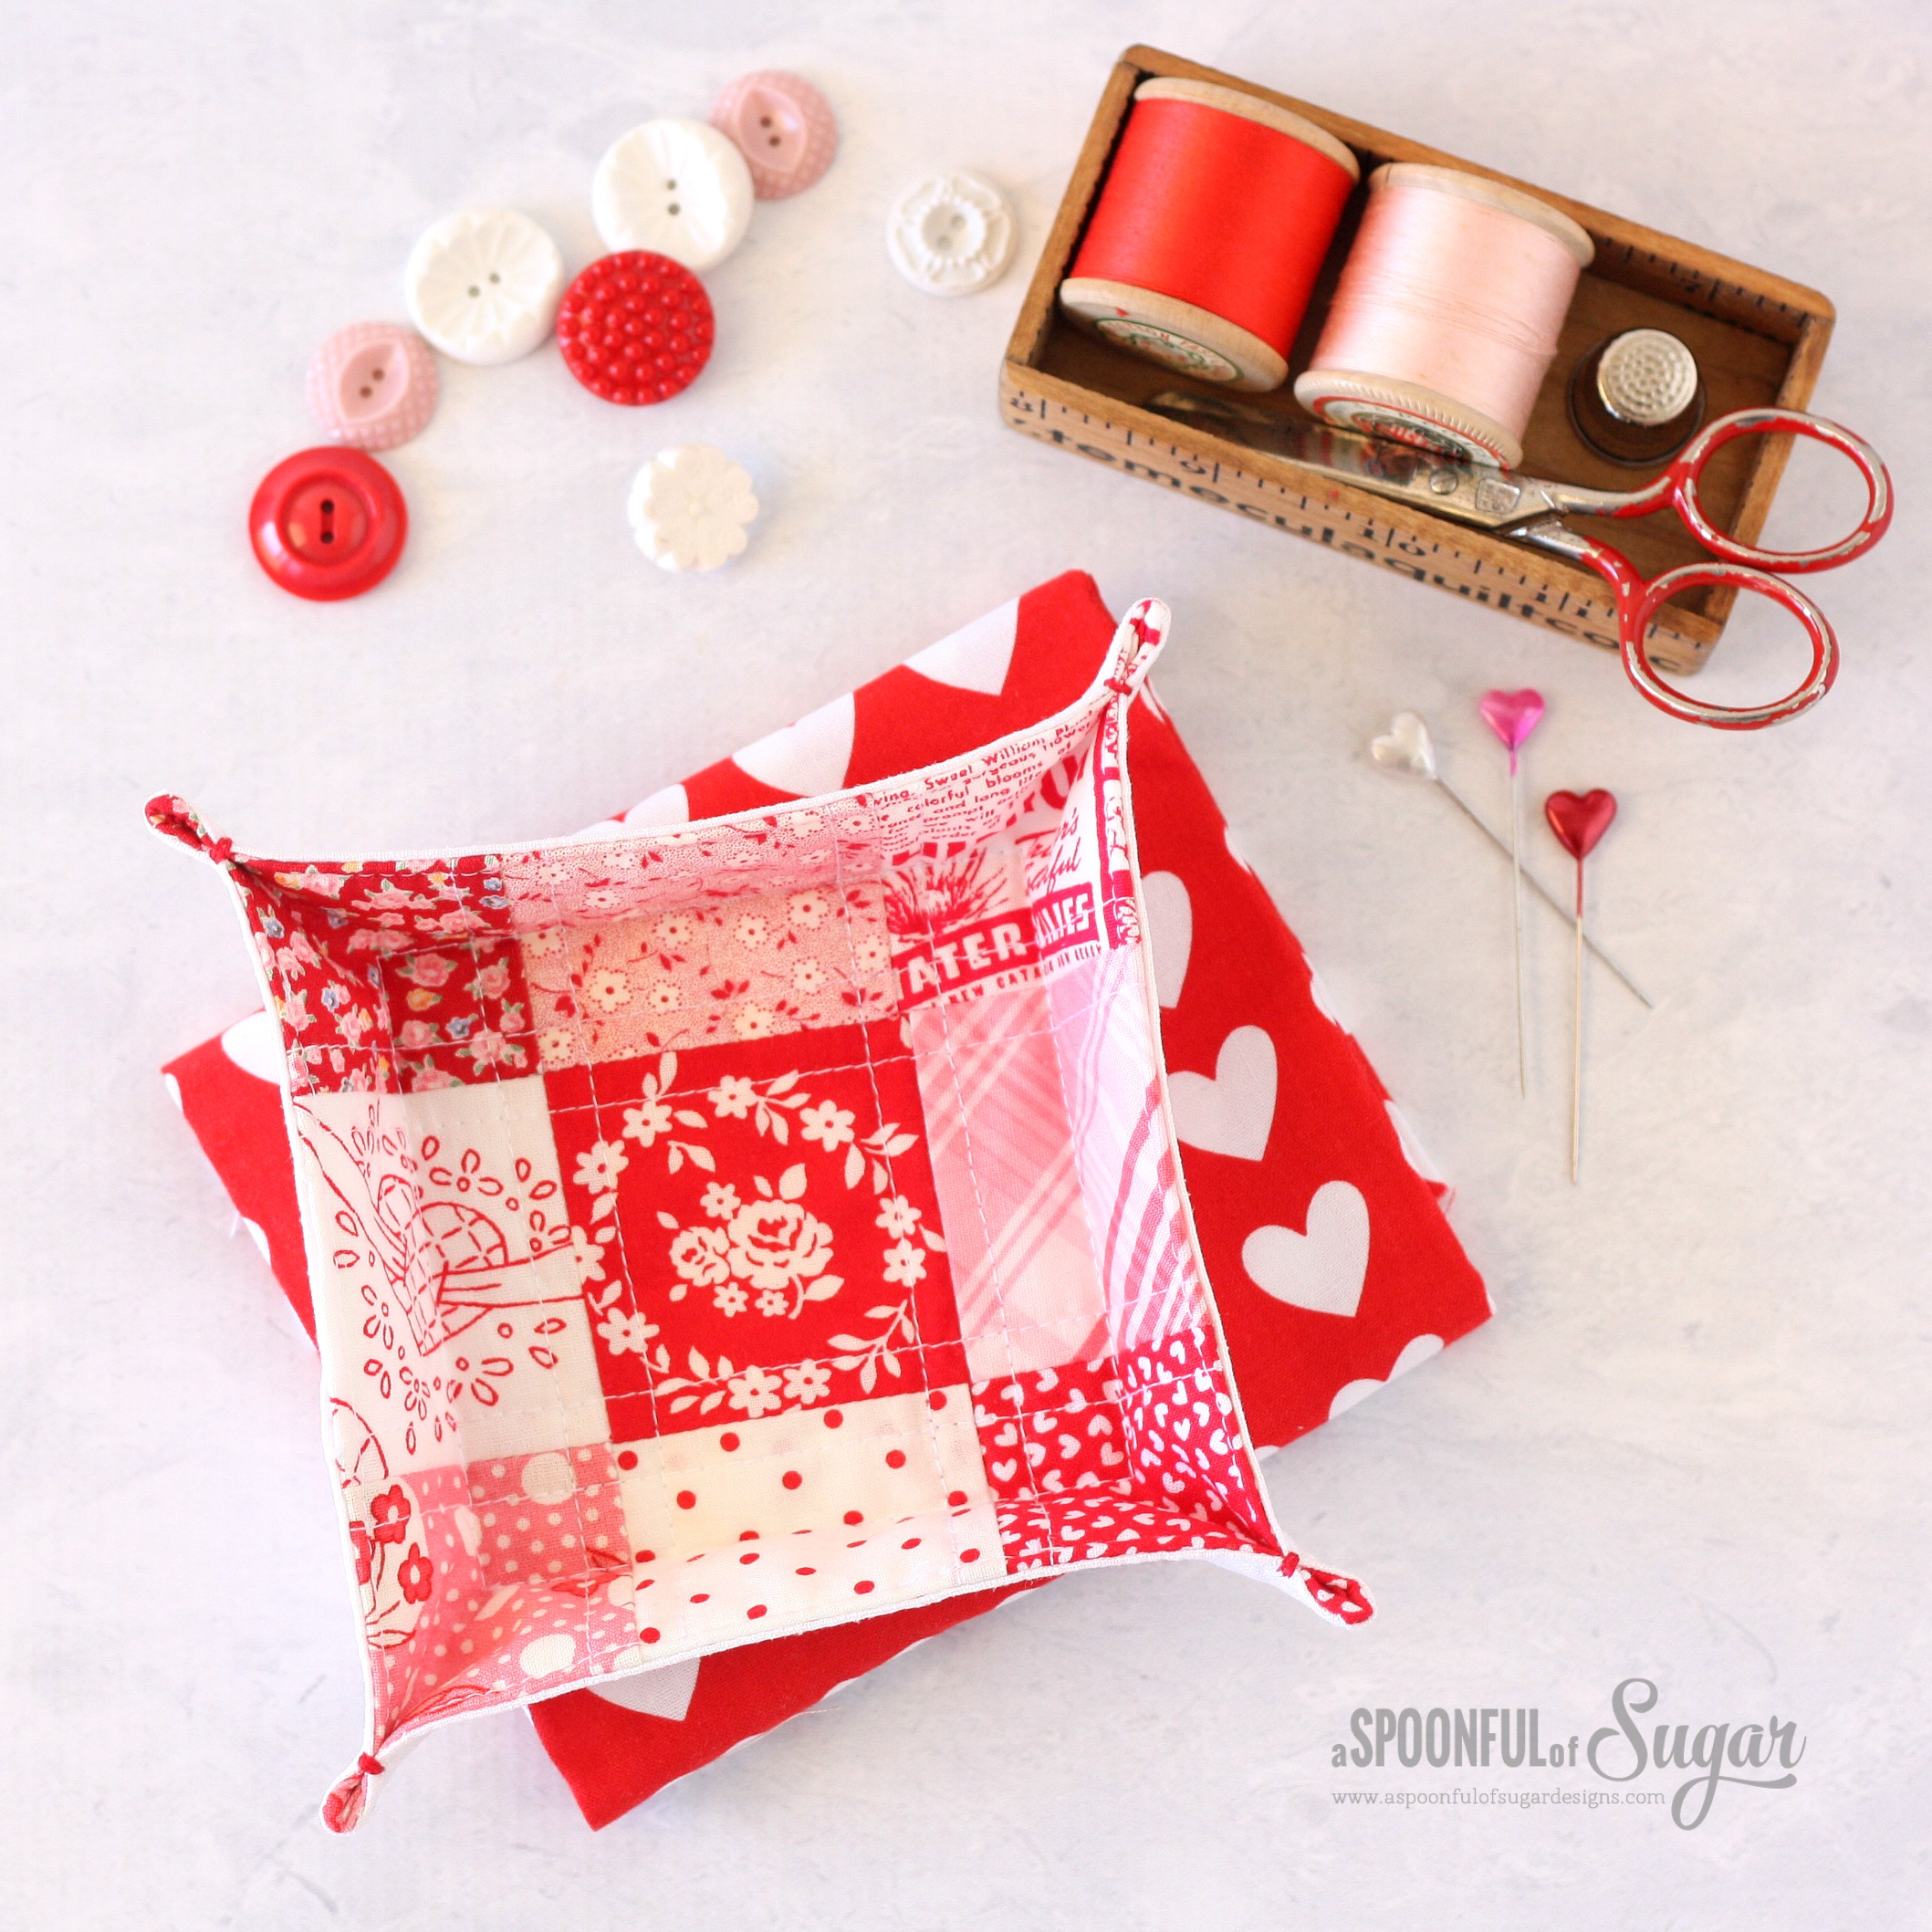 Patchwork Fabric Tray - Top Sewing Tutorials from 2016 - A Spoonful of Sugar - www.aspoonfulofsugardesigns.com